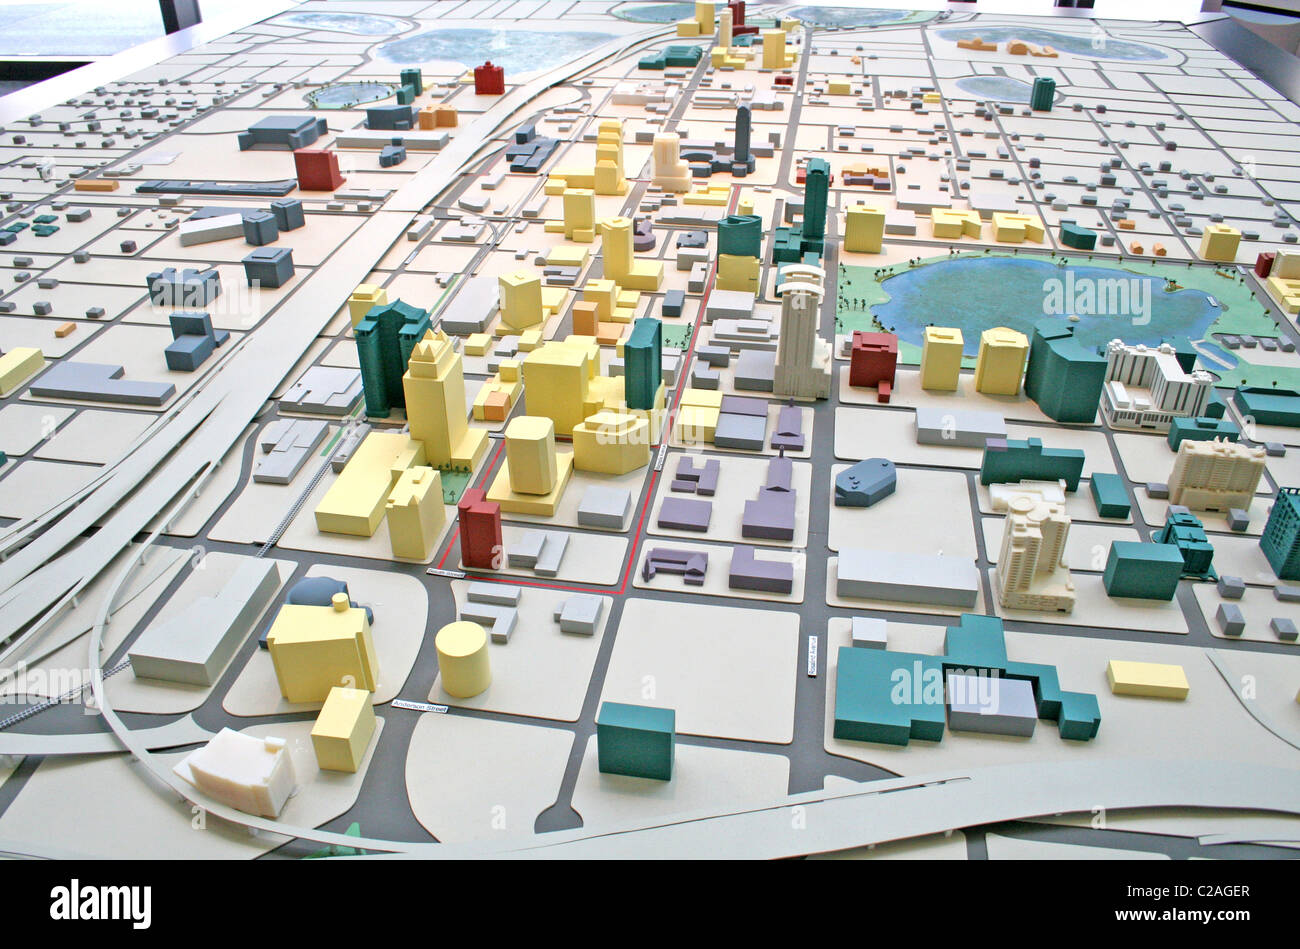 City scale model at Visitors Center, downtown Orlando Florida - Stock Image